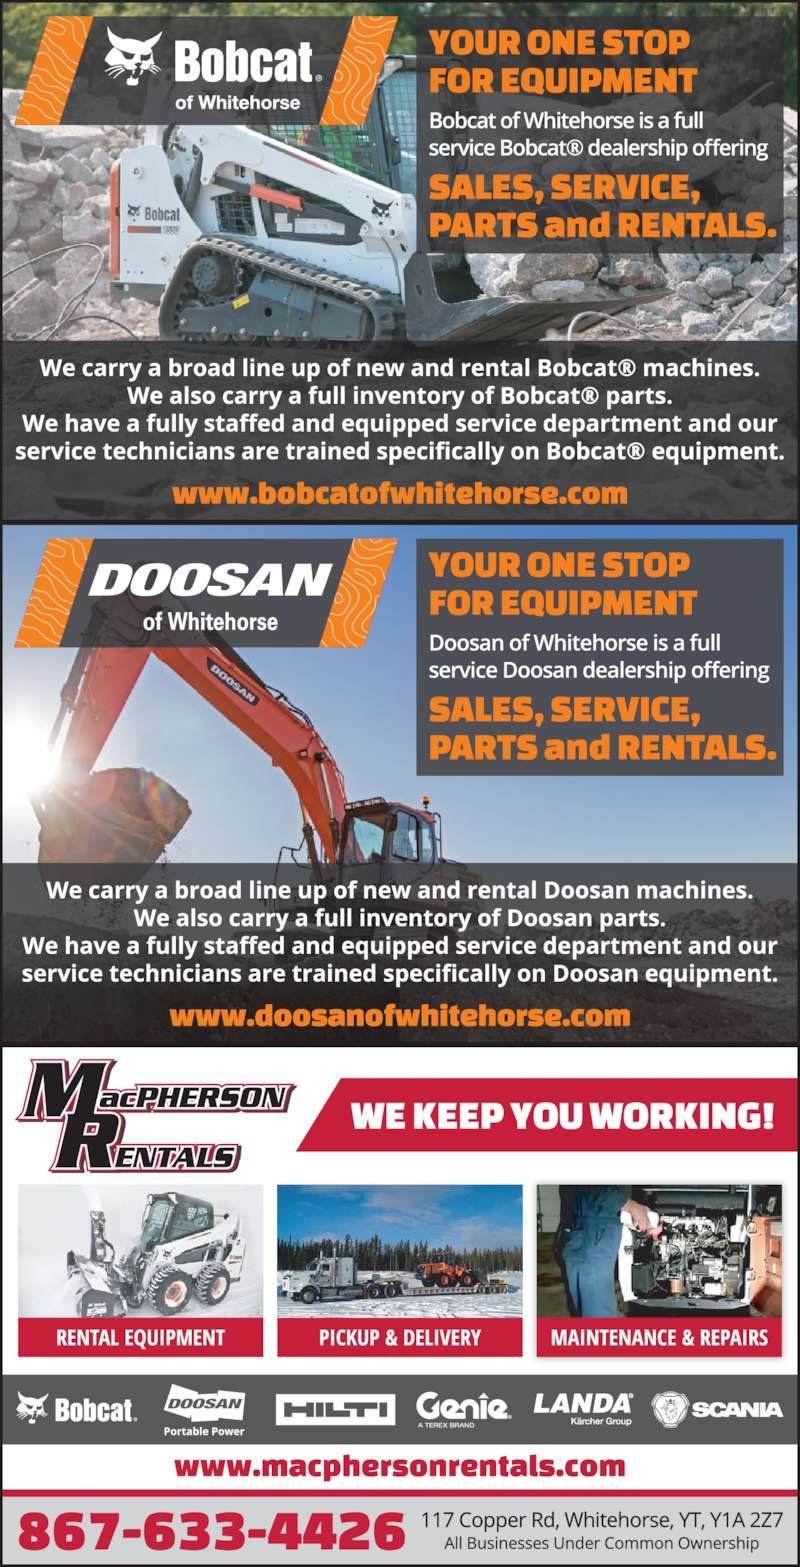 MacPherson Rentals (867-633-4426) - Display Ad - We Keep You Working Authorized Dealer 867-633-4426 macphersonrentals.com | 117 Copper Rd Whitehorse A subsidiary of Chilkoot Equipment Ltd. ? Zoom Booms ? Aerial Lifts ? Scaffolding / Ladders ? Heaters ? Ground Thaw Units ? Trailers ? Office Trailers ? Lawn & Garden Equipment ? Saws / Nailers ? Floor Sanders ? Log Splitters ? Augers ? Skid-steers / Track-steers ? Excavators / Loaders ? Generators ? Air Compressors ? Light Stands ? Compaction Equipment ? And Much, Much, More! Rentals ? Sales ? Parts ? Service